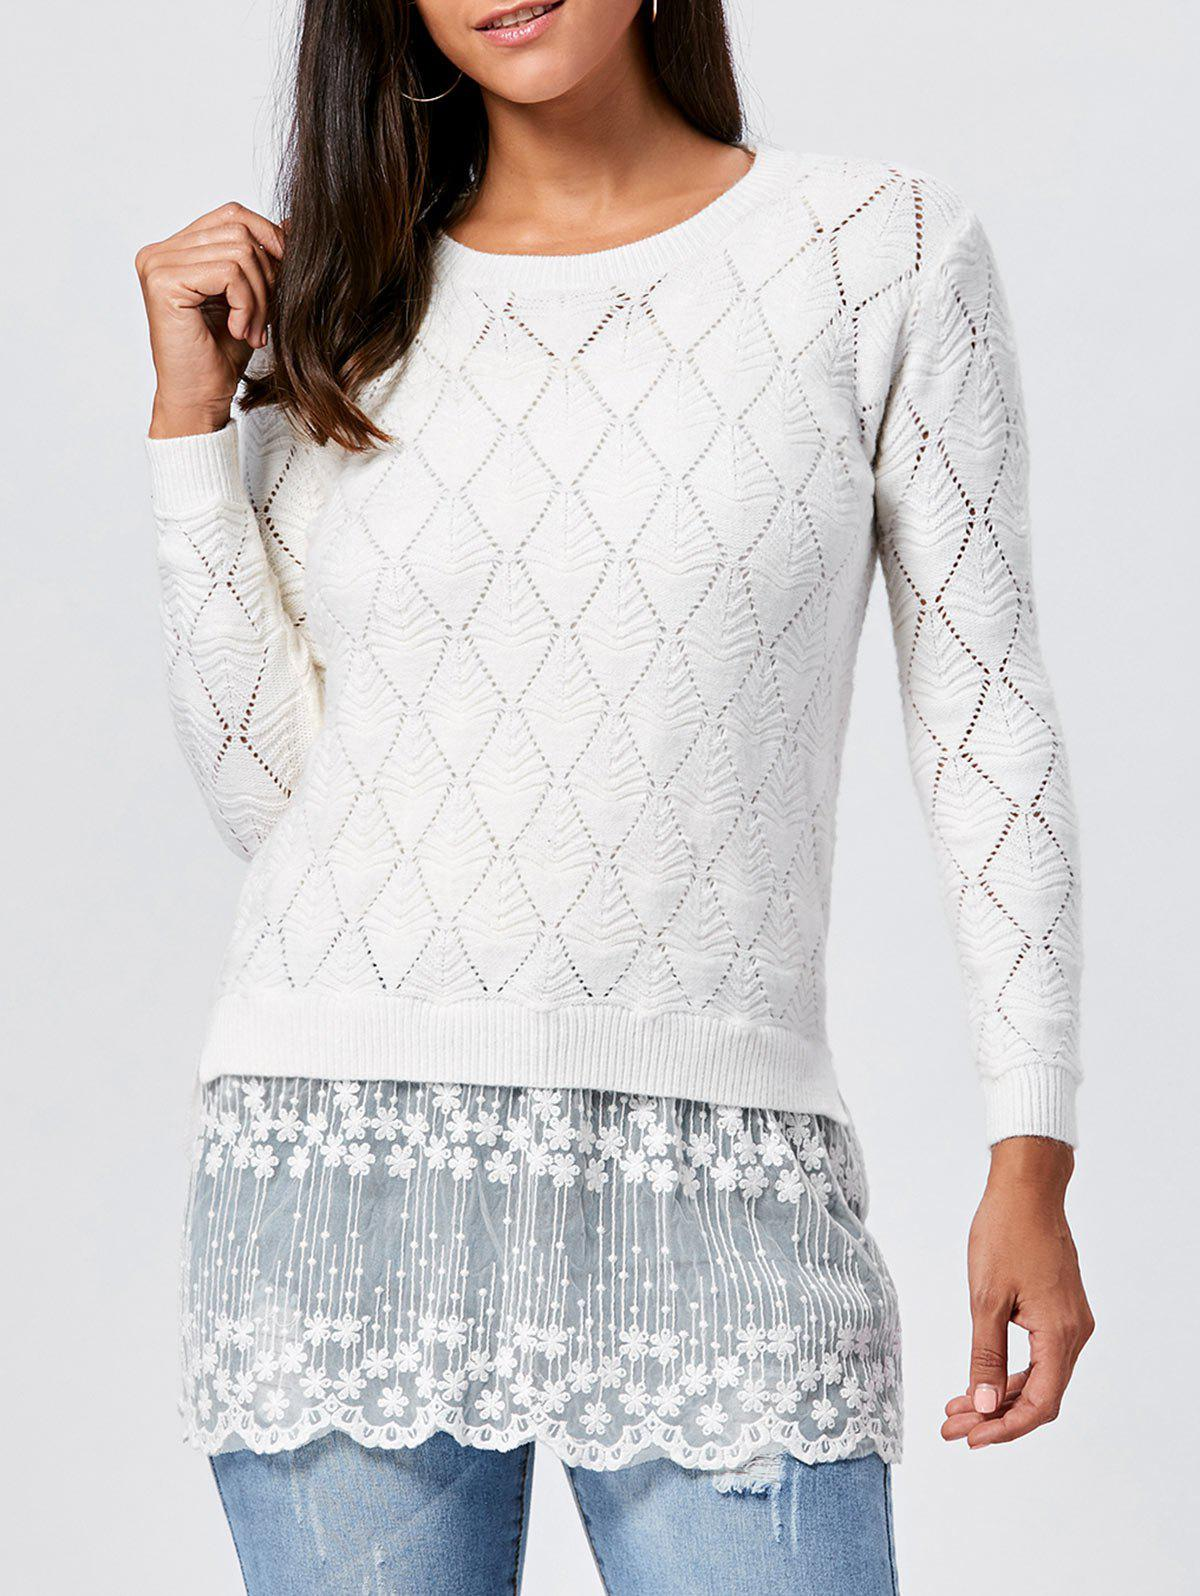 Lace Panel Hollow Out Argyle Ribbed Pullover Sweater 222107103